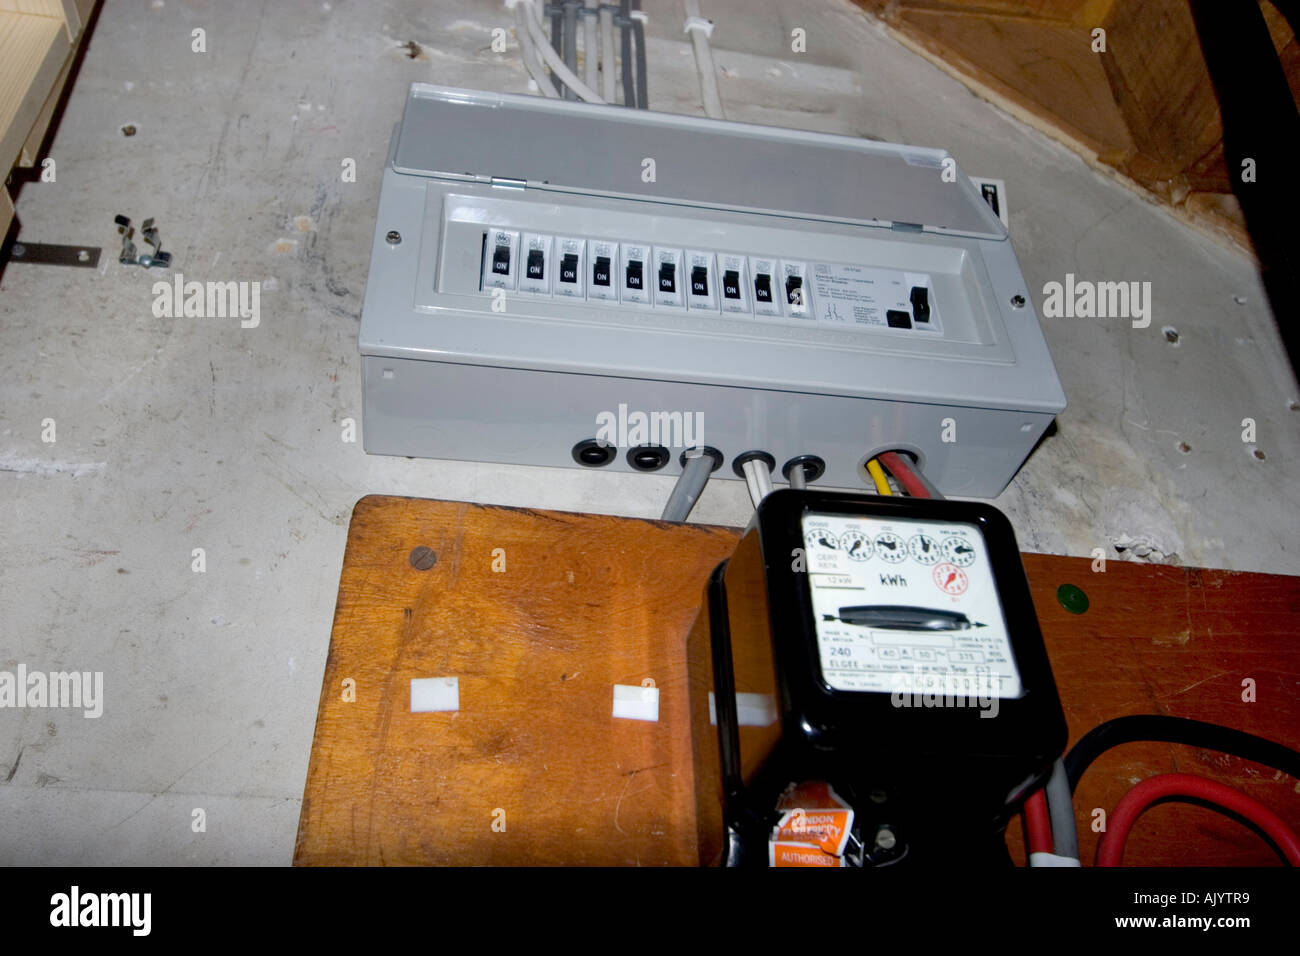 hight resolution of uk electrical fuse box under stairs of house with standard electricity meter stock image